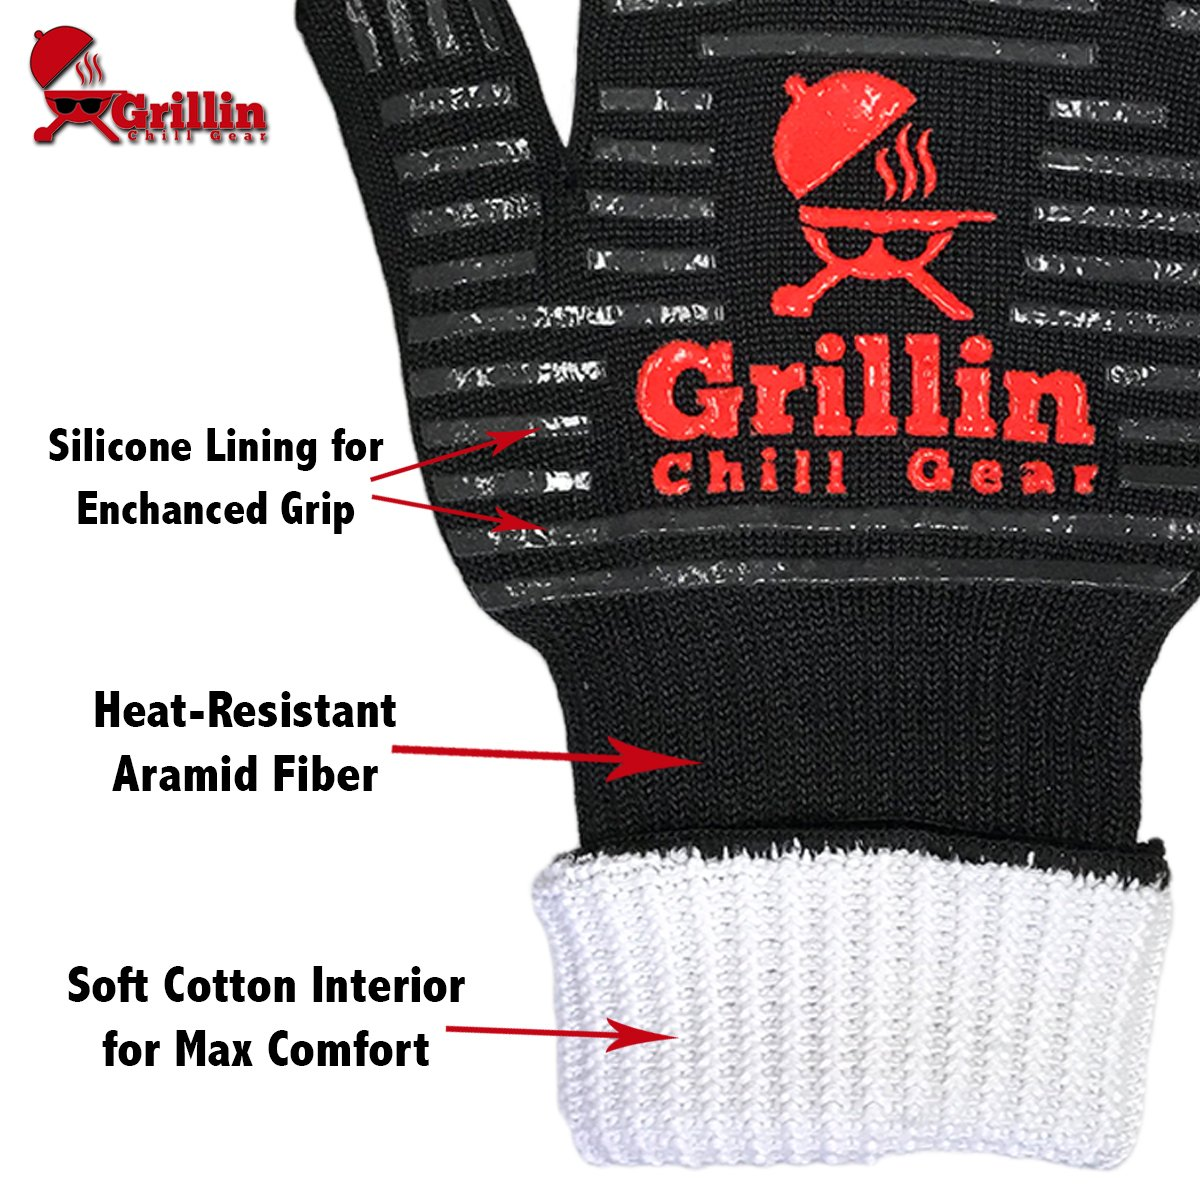 Grillin Chill Gear Meat Claws - Best Bear Claw Pulled Pork Meat Shredders in BBQ Grill Accessories +Extreme Heat Resistant Grill Gloves, Heavy Duty Aramid Fiber & Non Slip Silicone, Soft Cotton Liner by Grillin Chill Gear (Image #2)